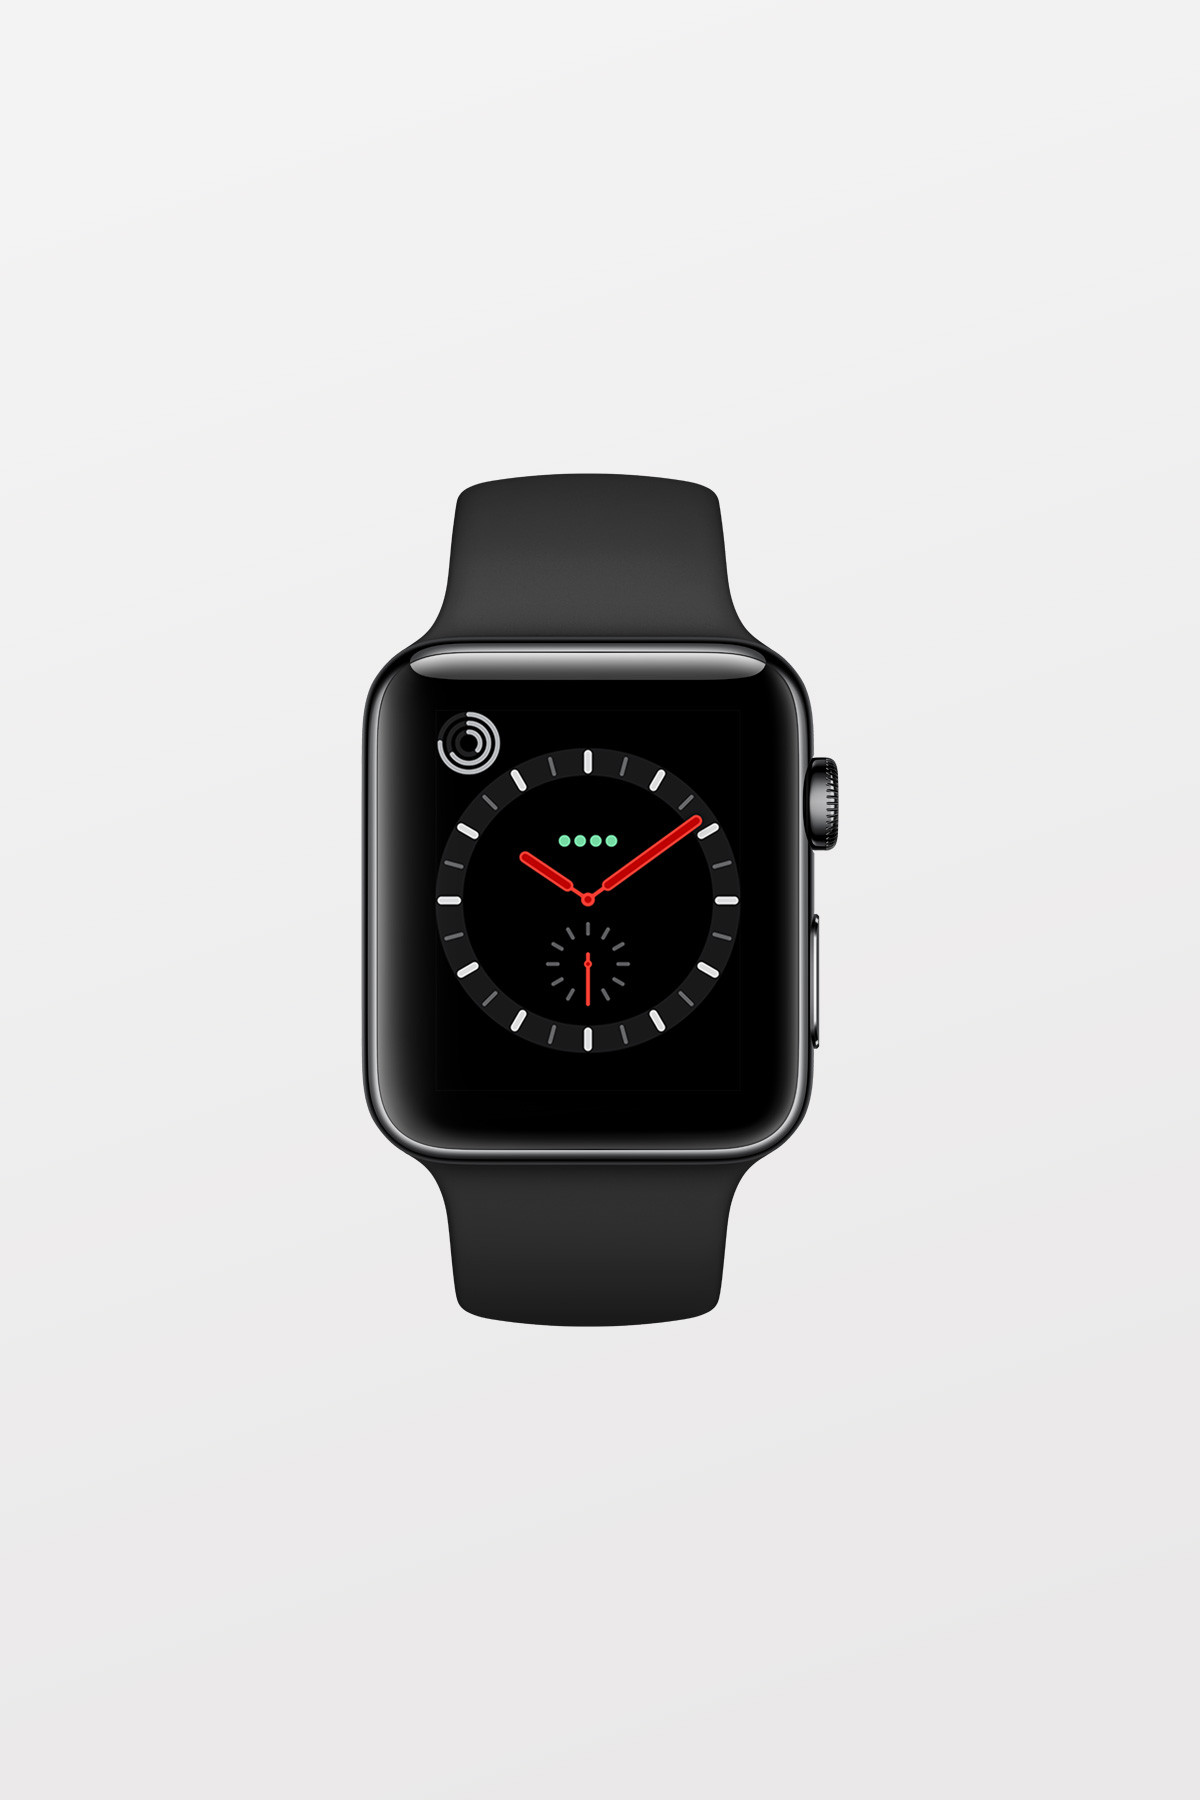 Apple Watch Series 3 GPS + Cellular - 42mm - Space Grey Aluminium with Black Sport Band - Refurbished